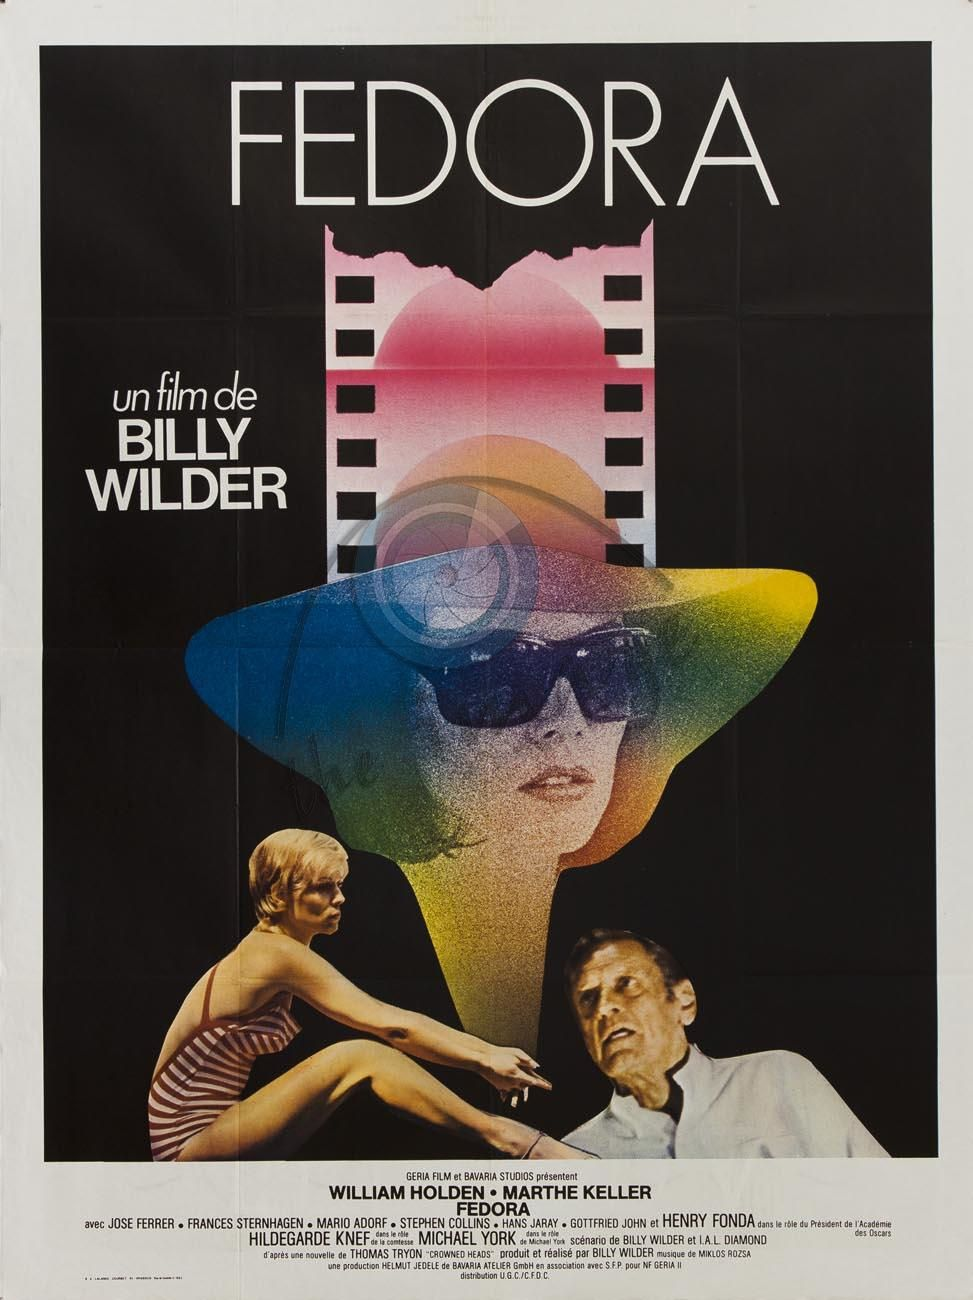 Fedora - Billy Wilder (1978)